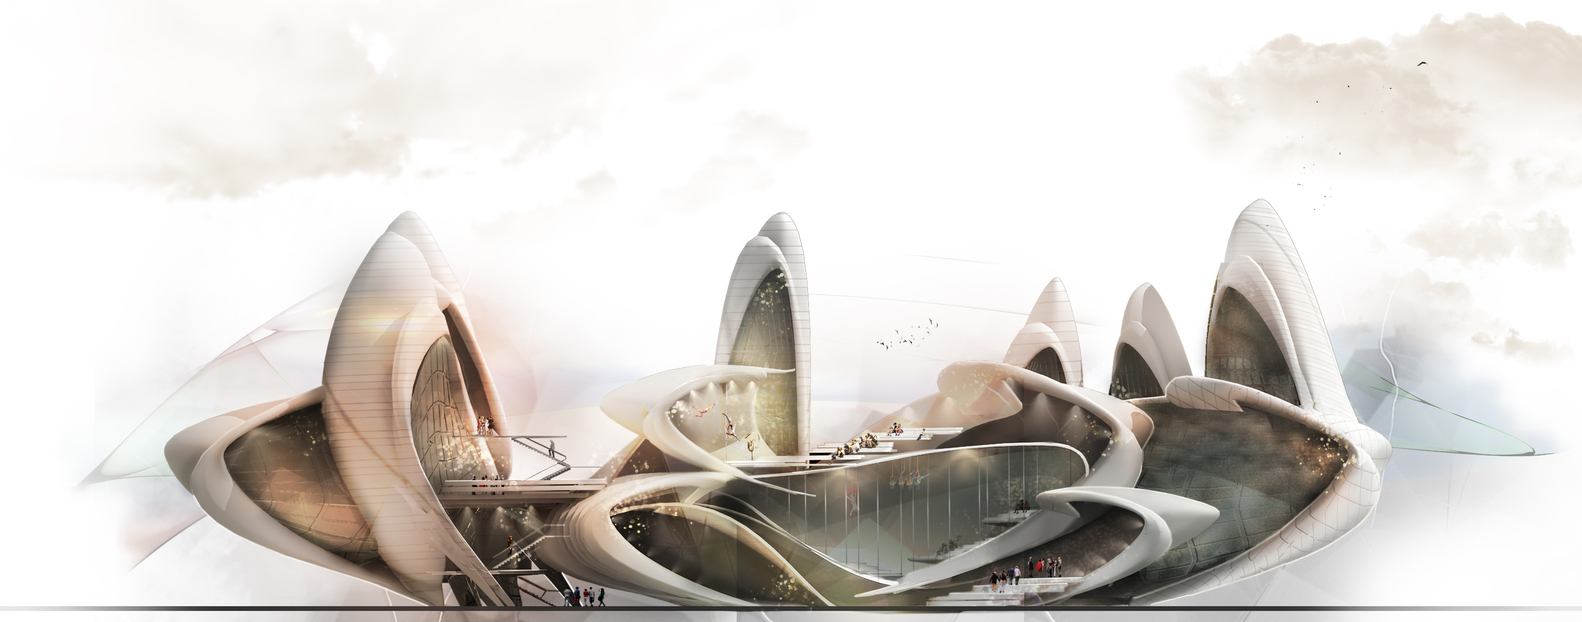 8 Conceptual Biomimicry projects that did not see the light of day - Sheet19